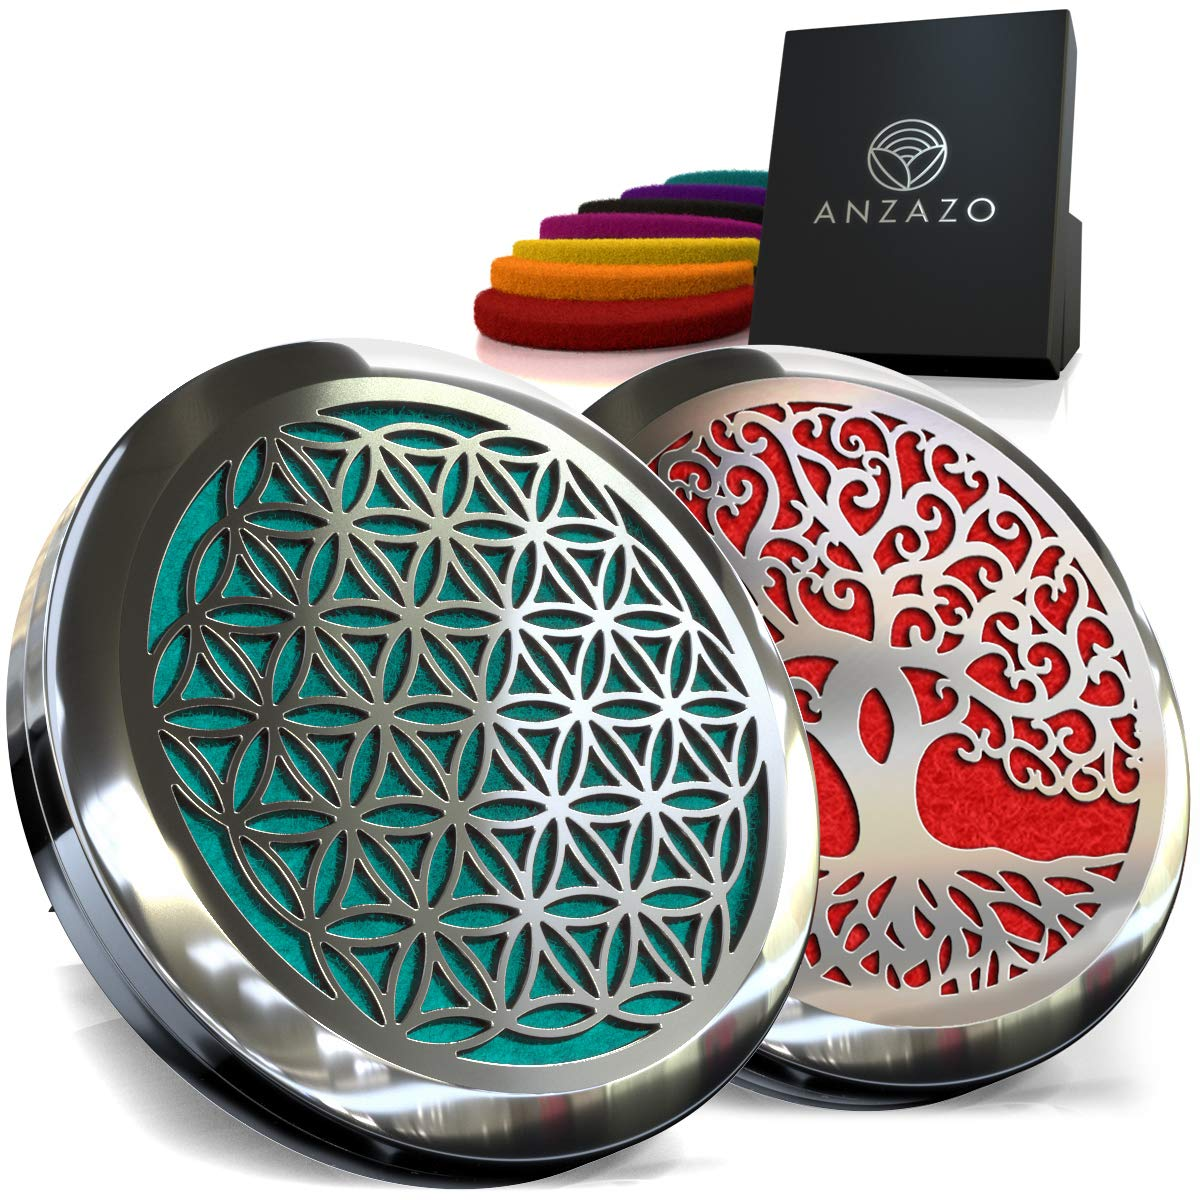 Car Essential Oil Diffuser - 1.5' Magnetic Locket Set with Air Vent Clip - Best for Aromatherapy - Fragrance Air Freshener, Scents Diffusers - Jewelry for Car, Flower of Life + Interconnected (2 Pack) Anzazo